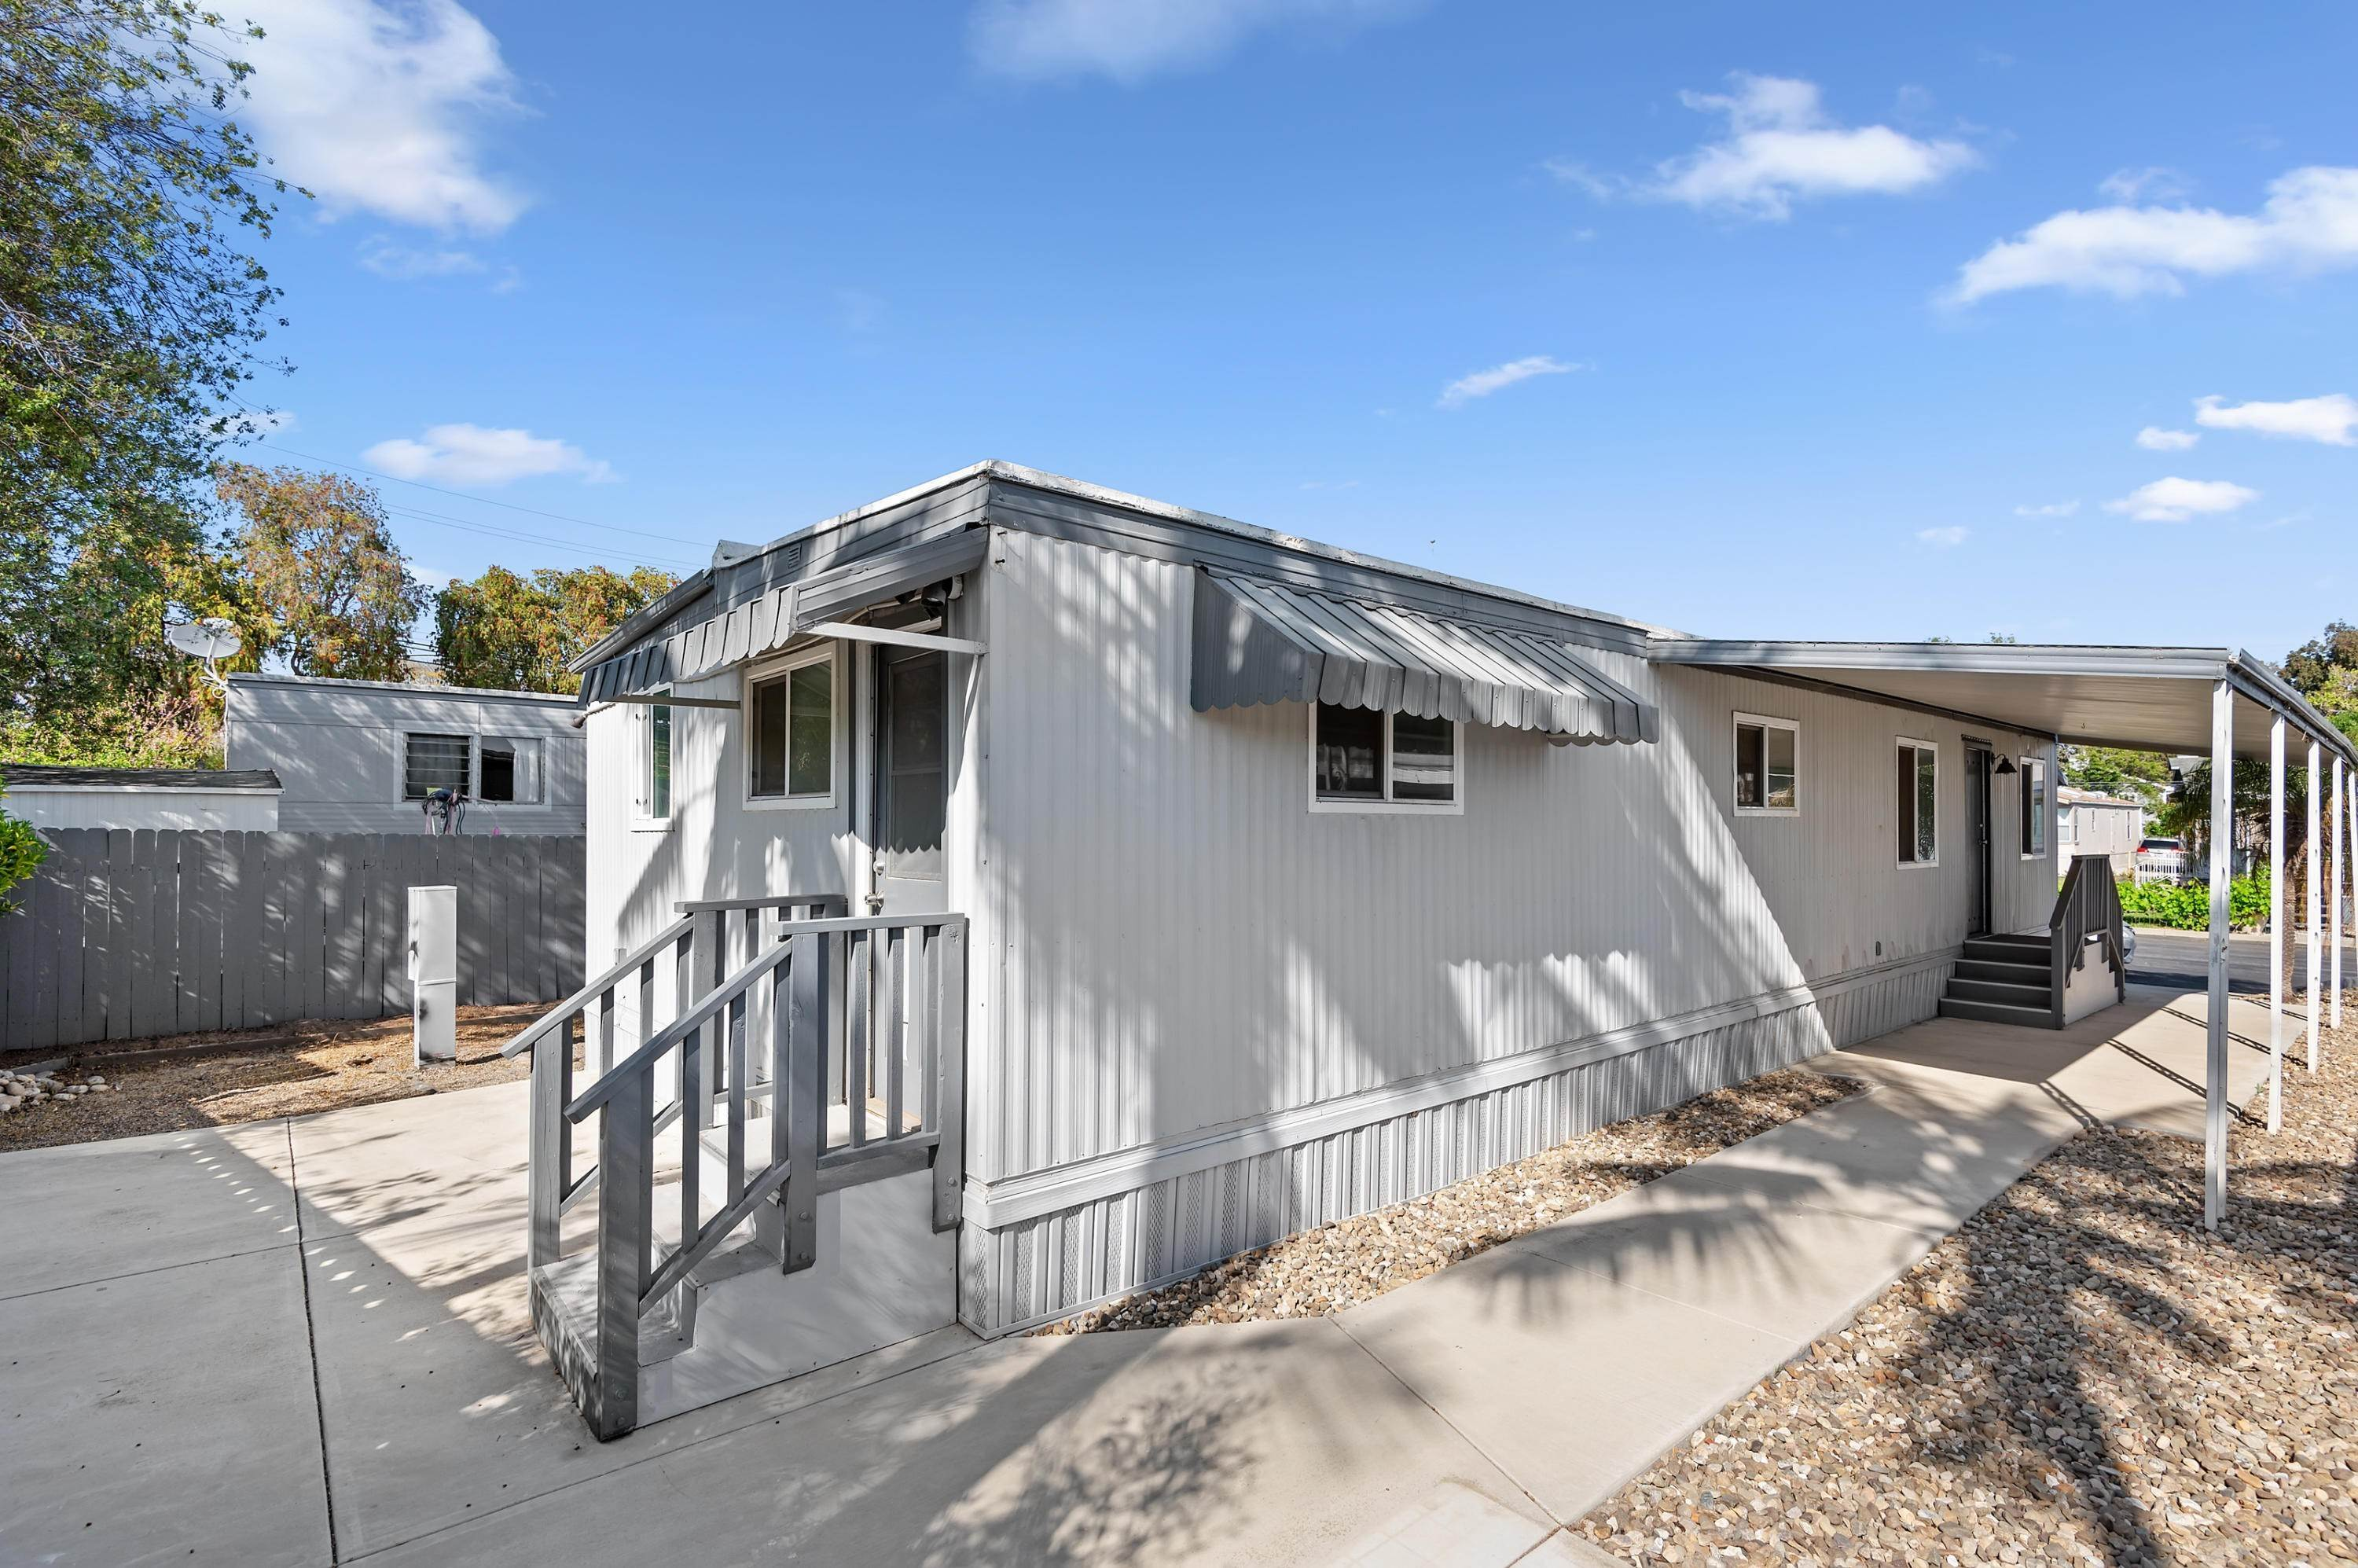 16. Manufactured Housing for Sale at 7465 Hollister Avenue Goleta, California 93117 United States